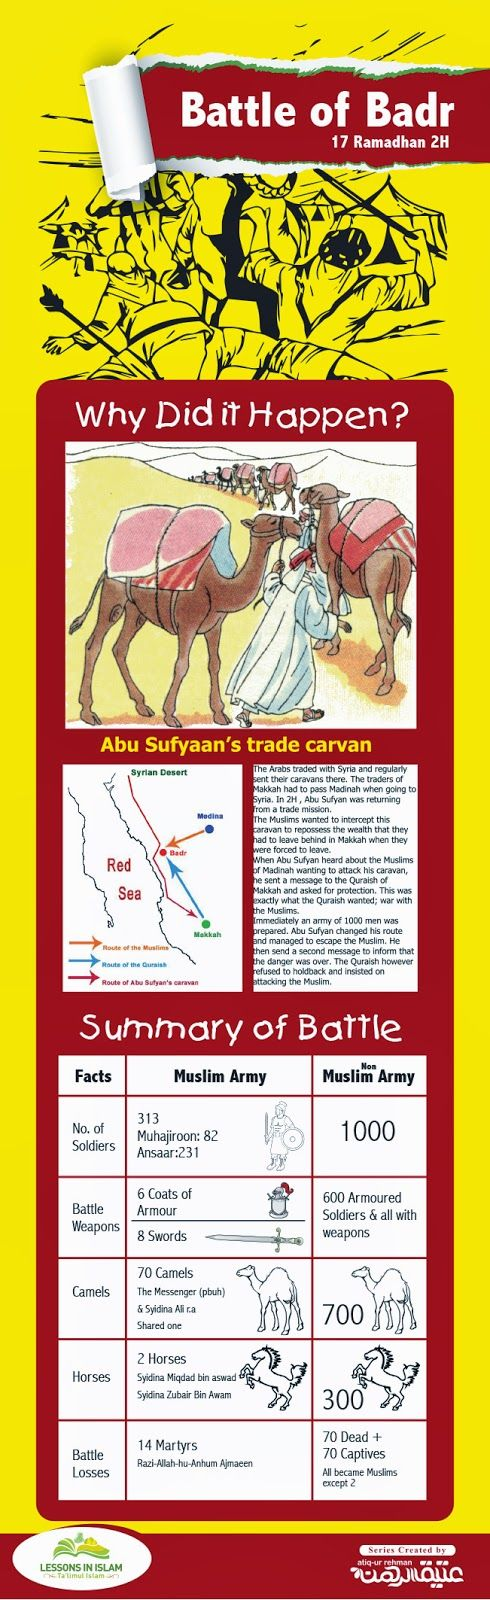 Lessons In Islam: The Battale of  Badr Poster